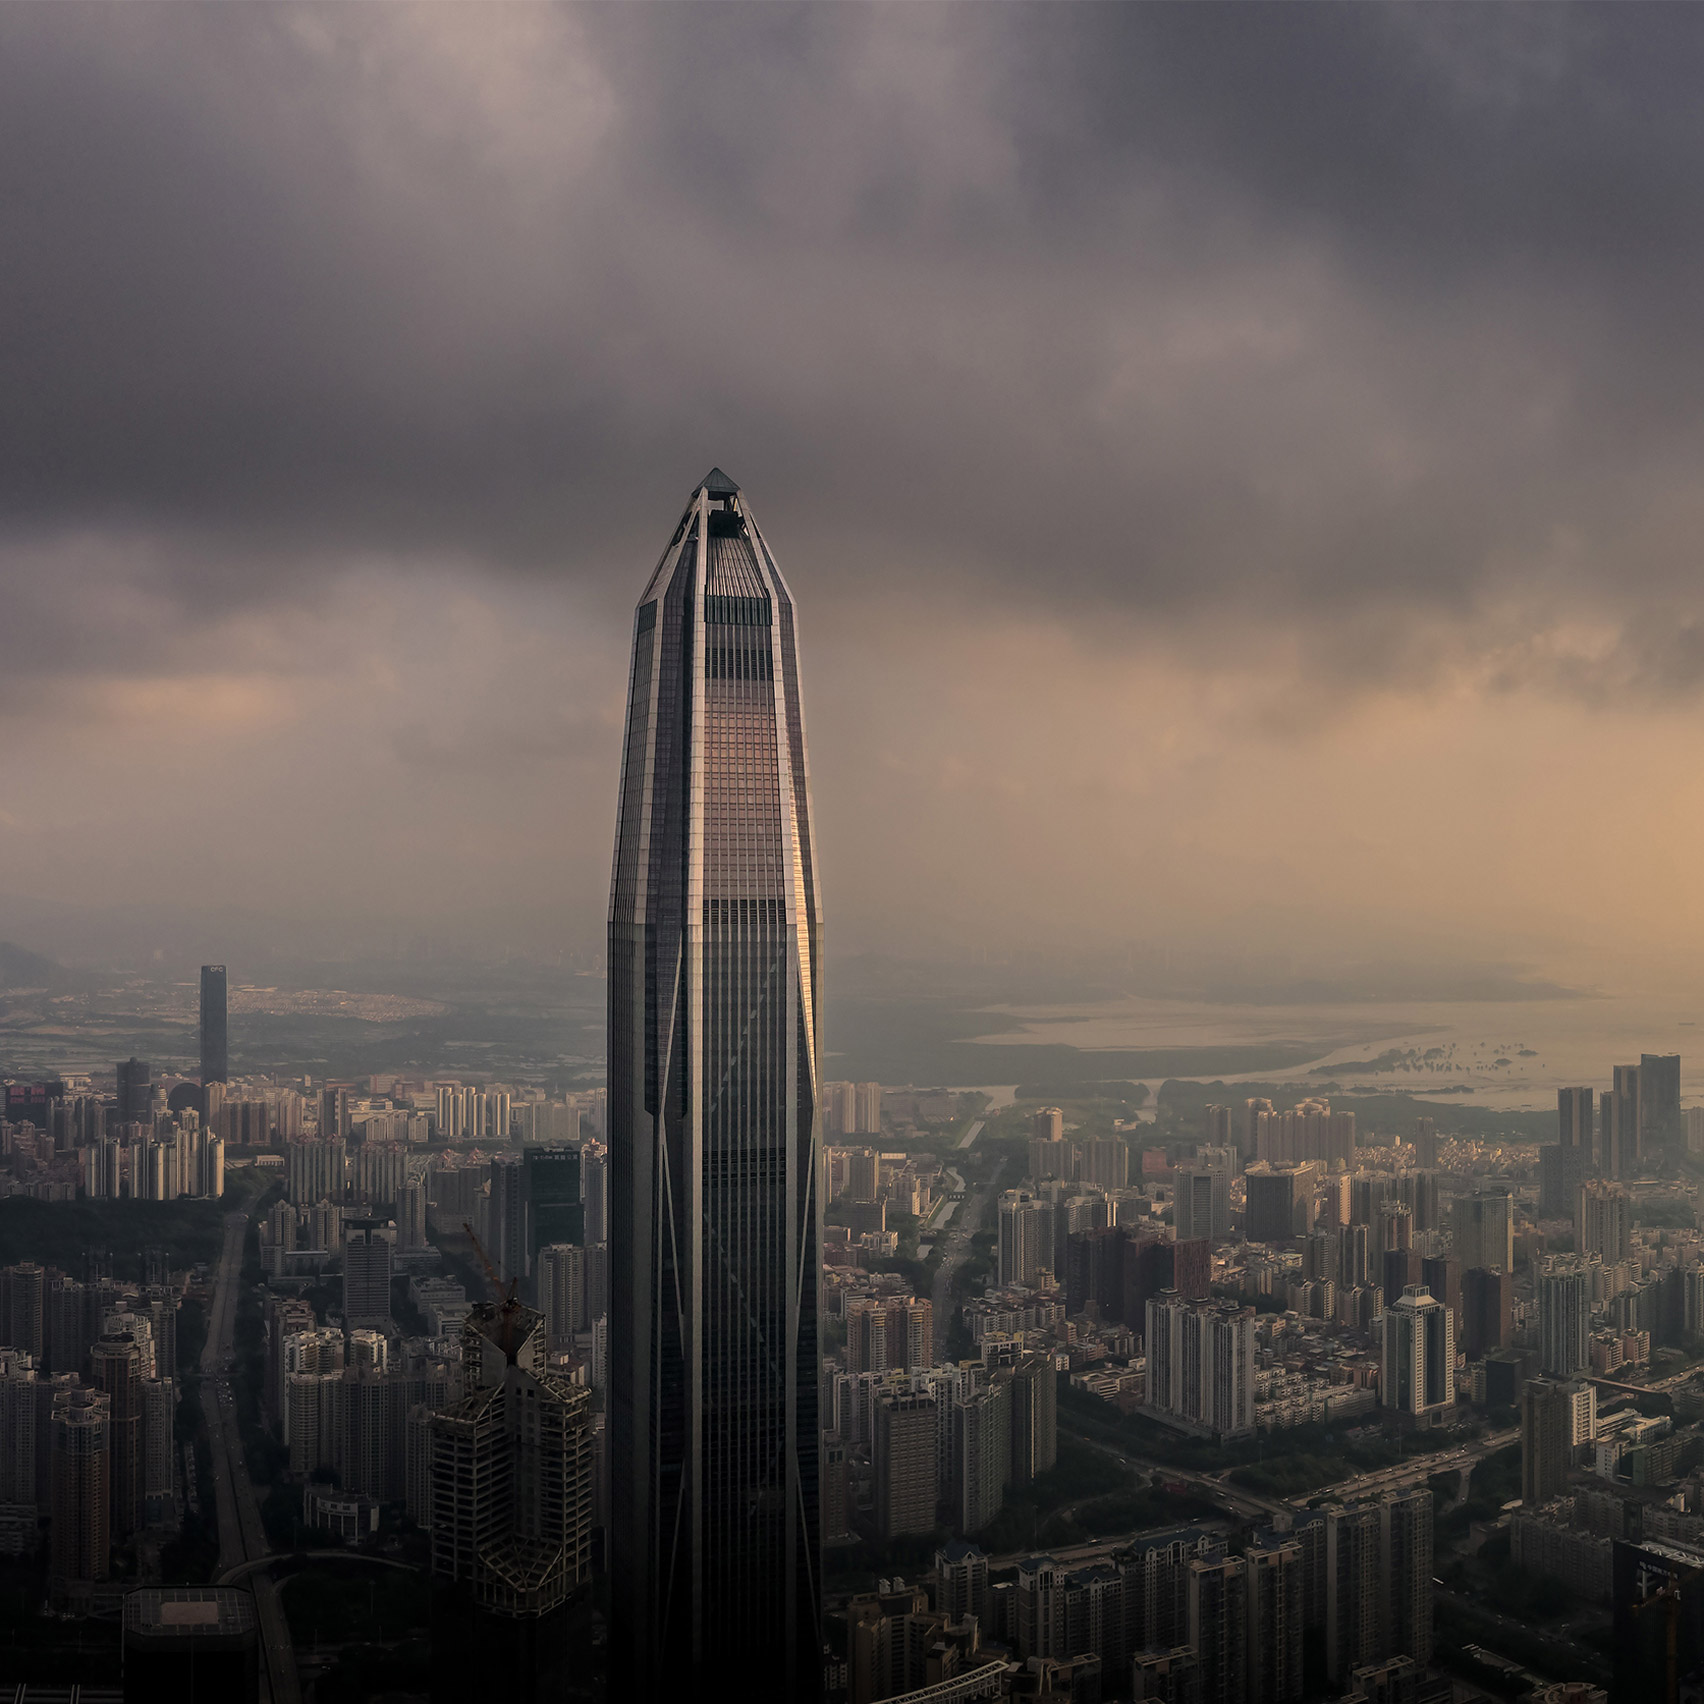 Top 10 skyscrapers: Ping An Finance Centre, China, by KPF